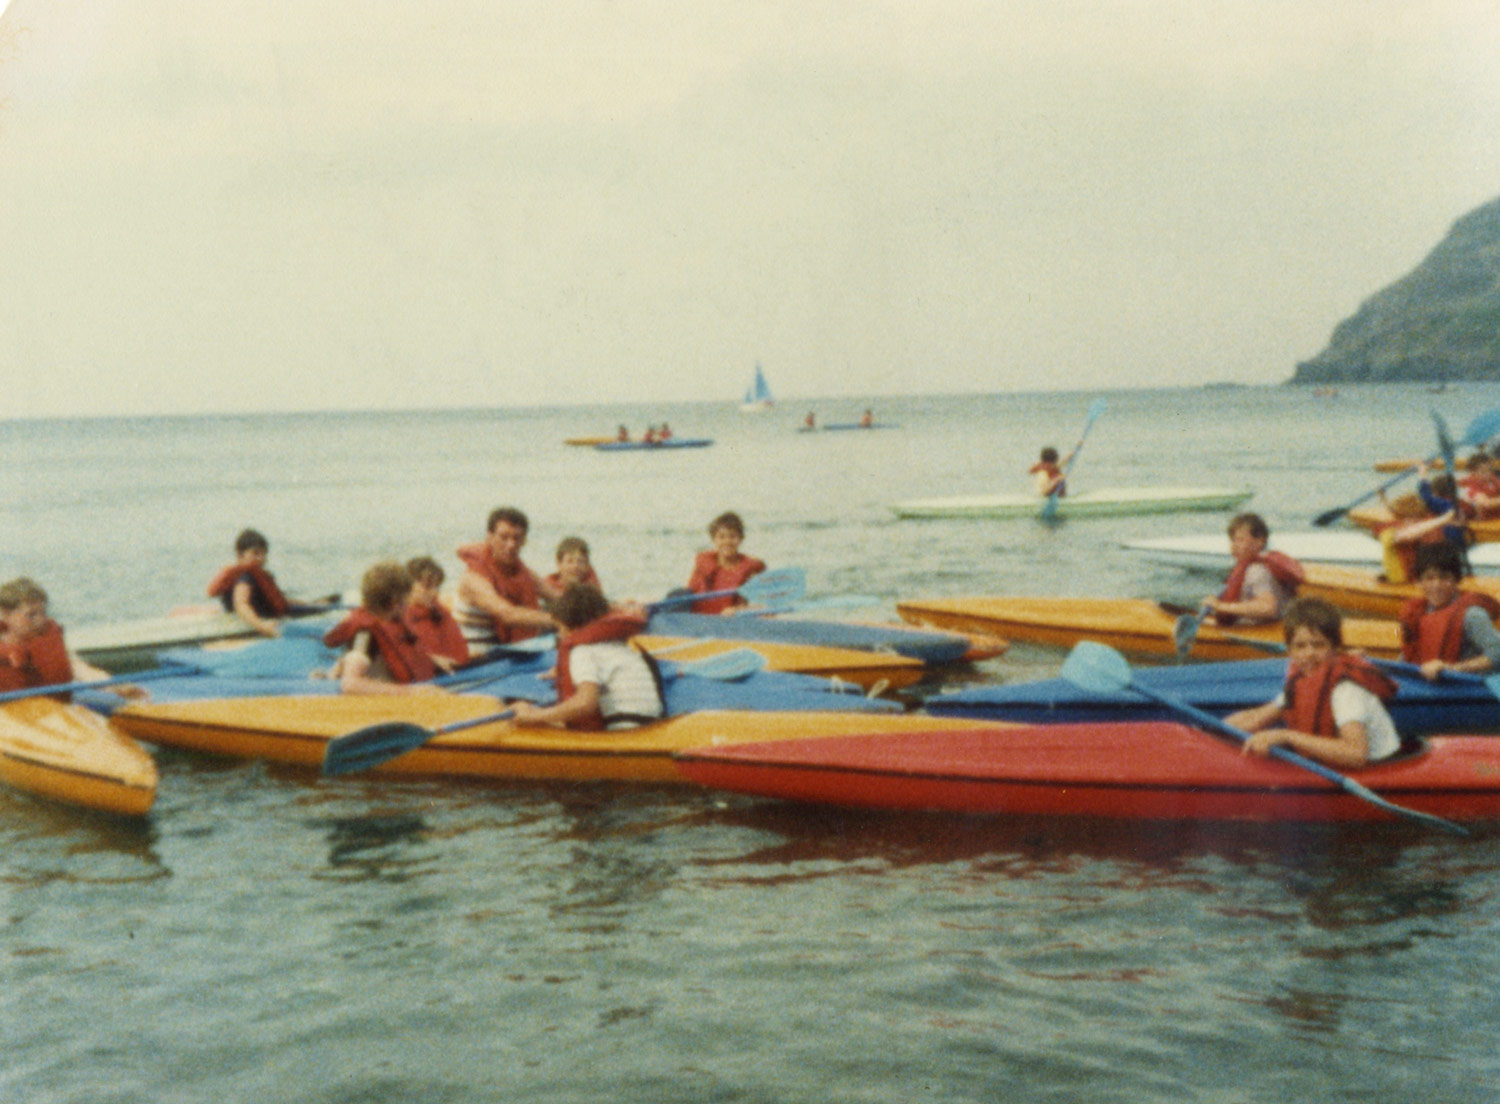 THE 1980s: Isle of Man PE Trip, Mr Geldart with pupils, July 1983